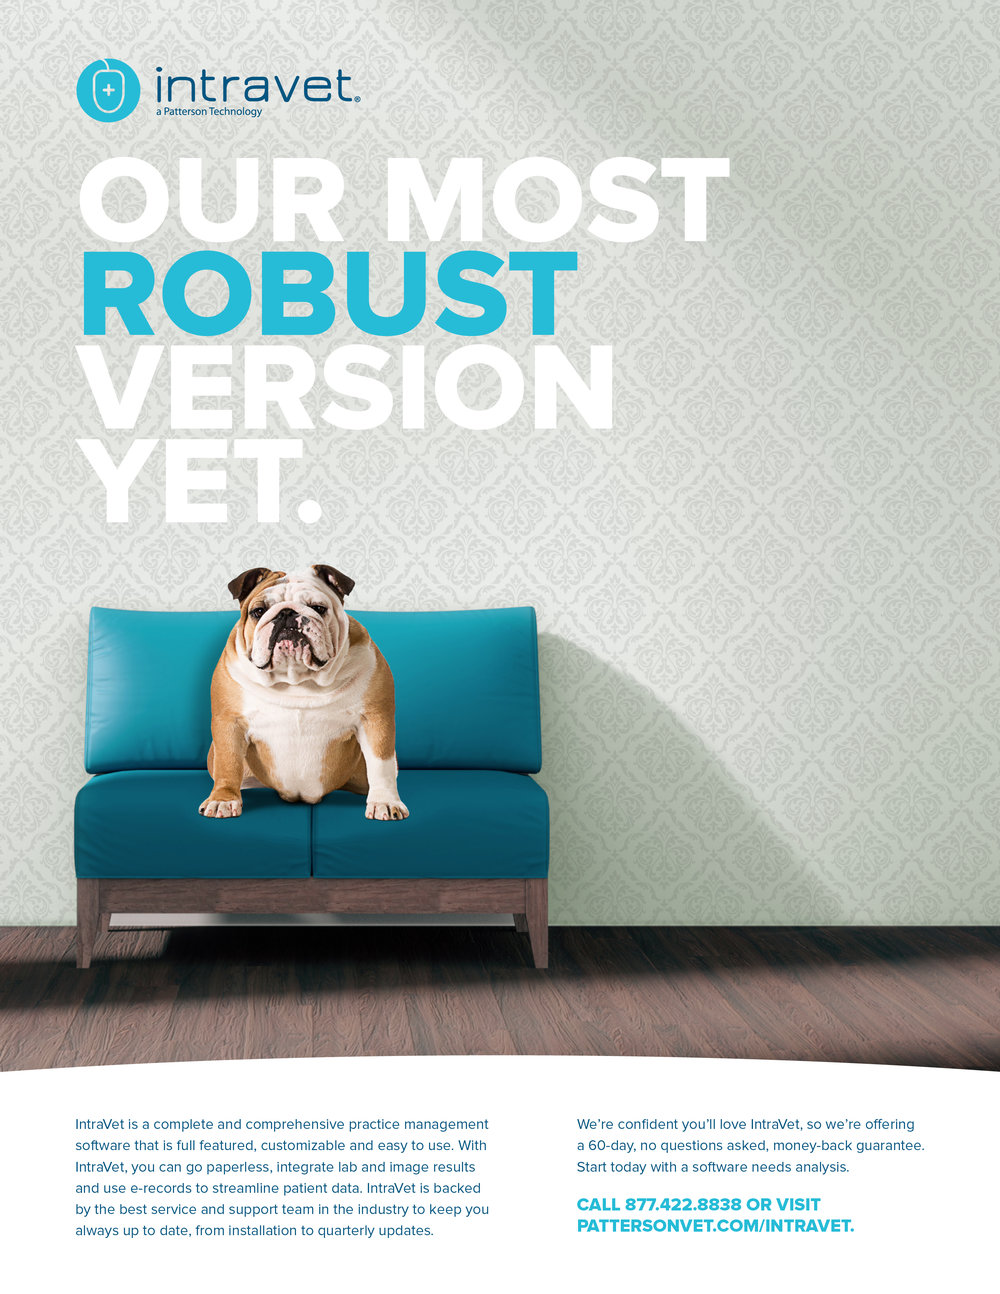 Intravet Ad Campaign